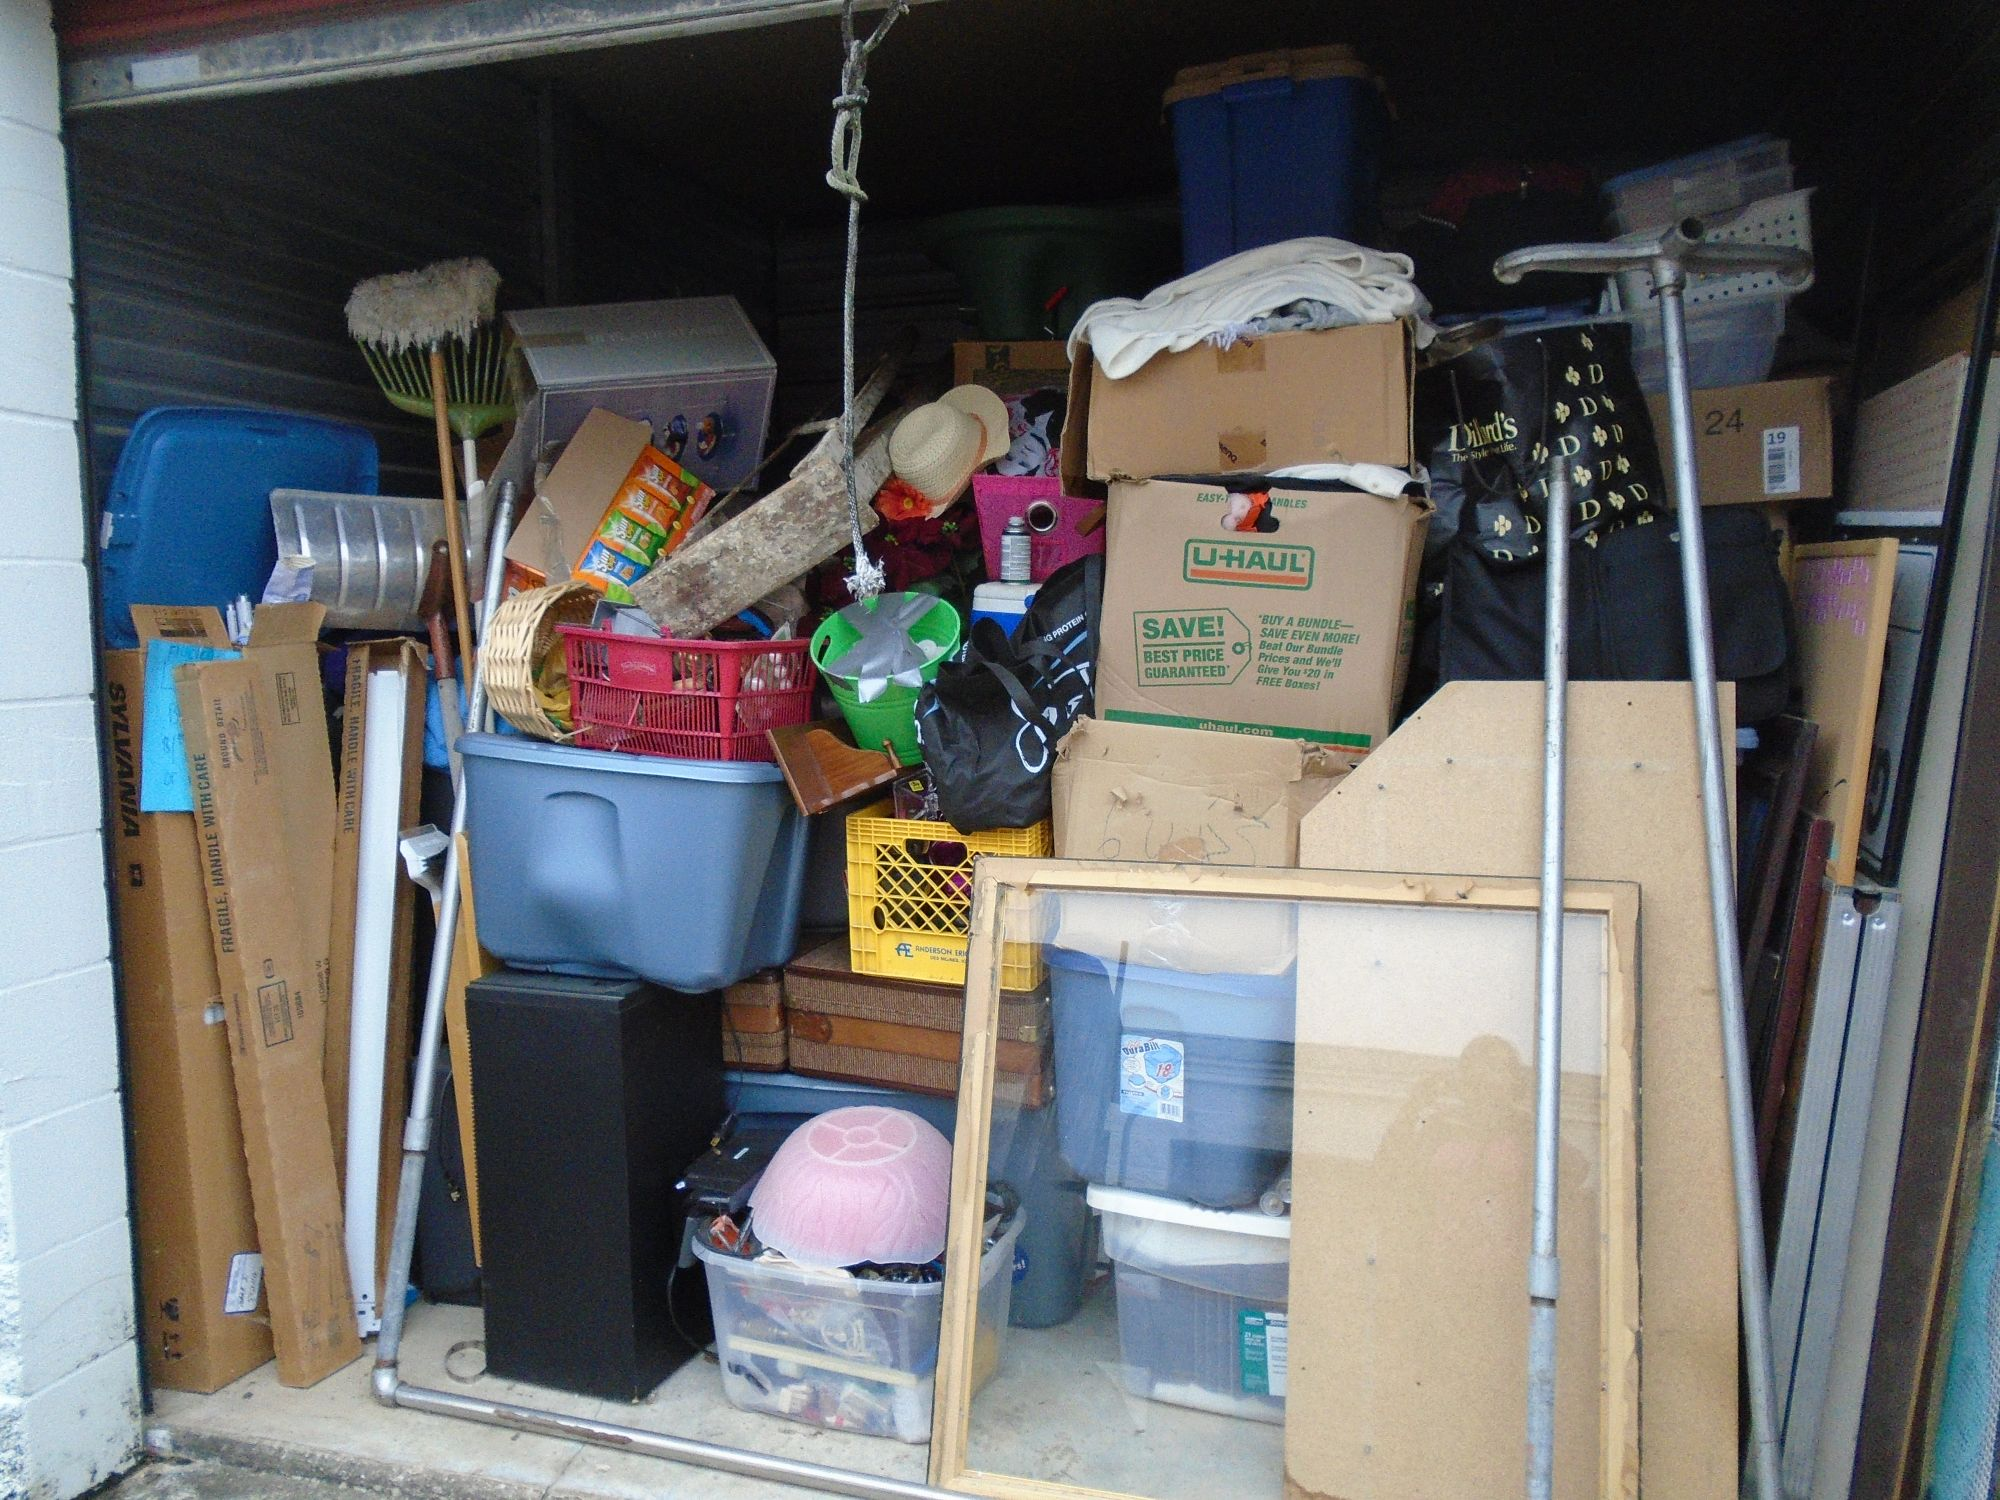 ... For Online And Onsite Storage Auction Services In The United States And  Canada. The New Site, Which Provides A More Dynamic Bidding Experience For  Over ...